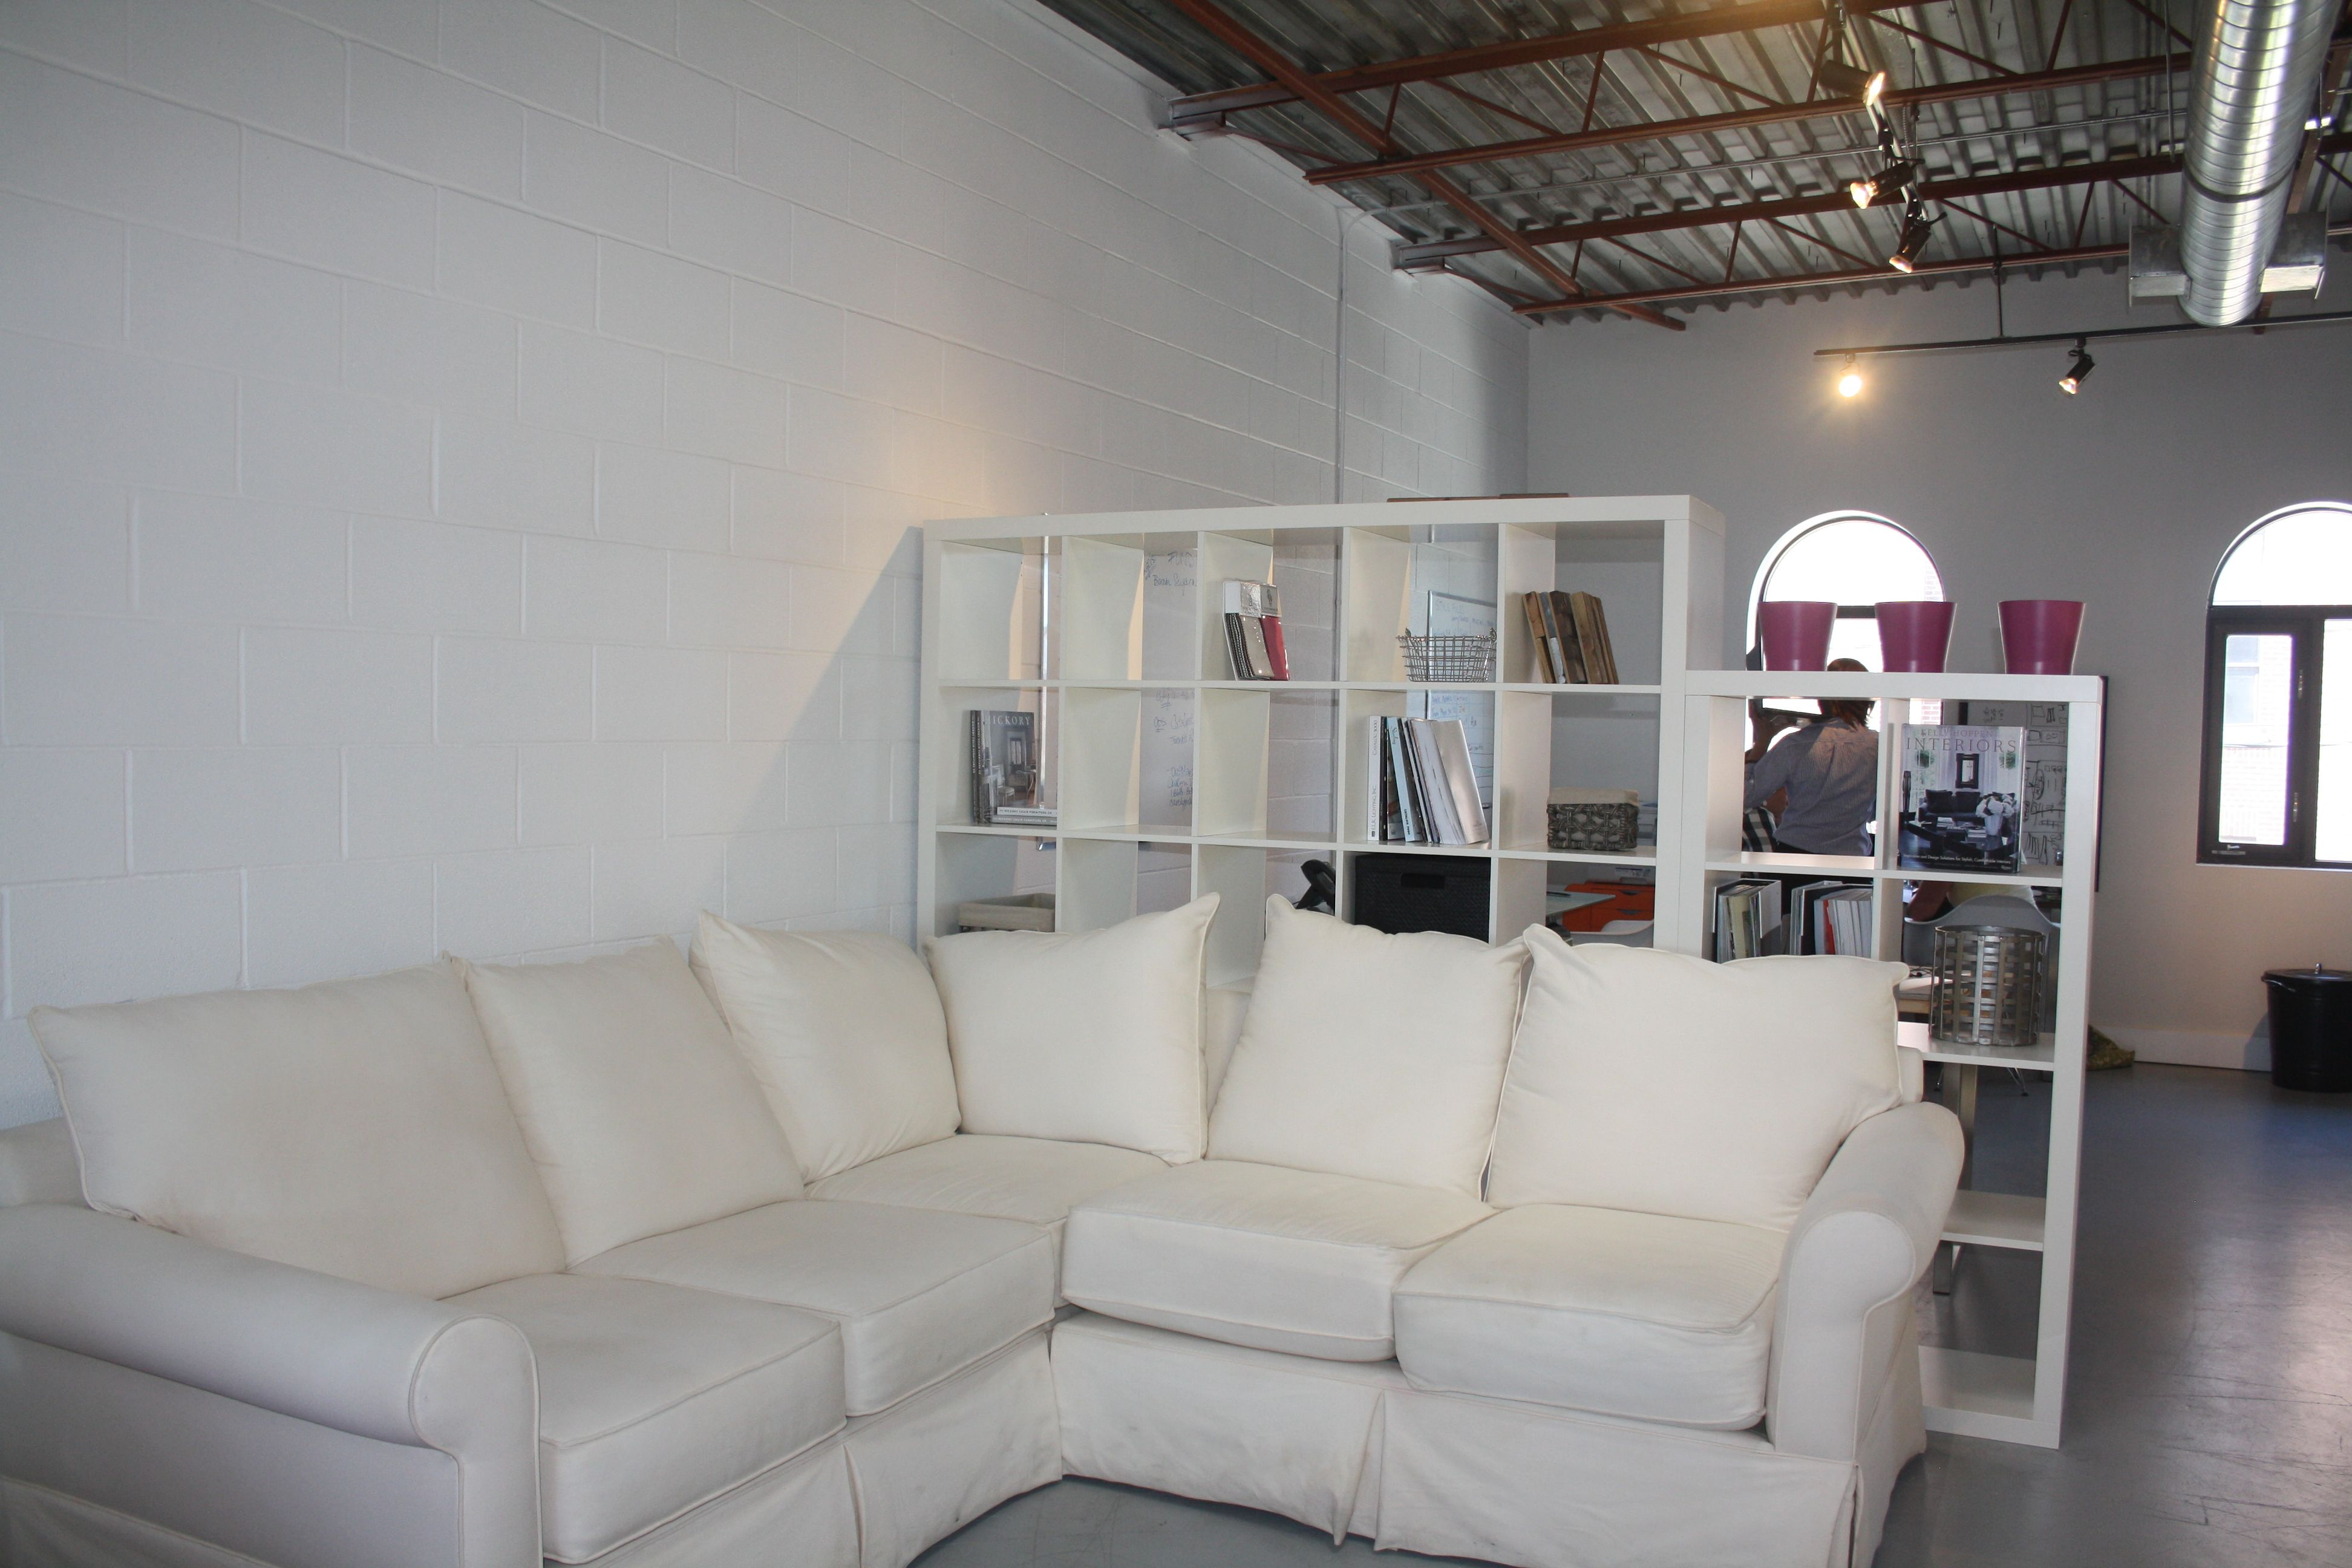 Rs Office White Comfy Couch Home Comfy Couch